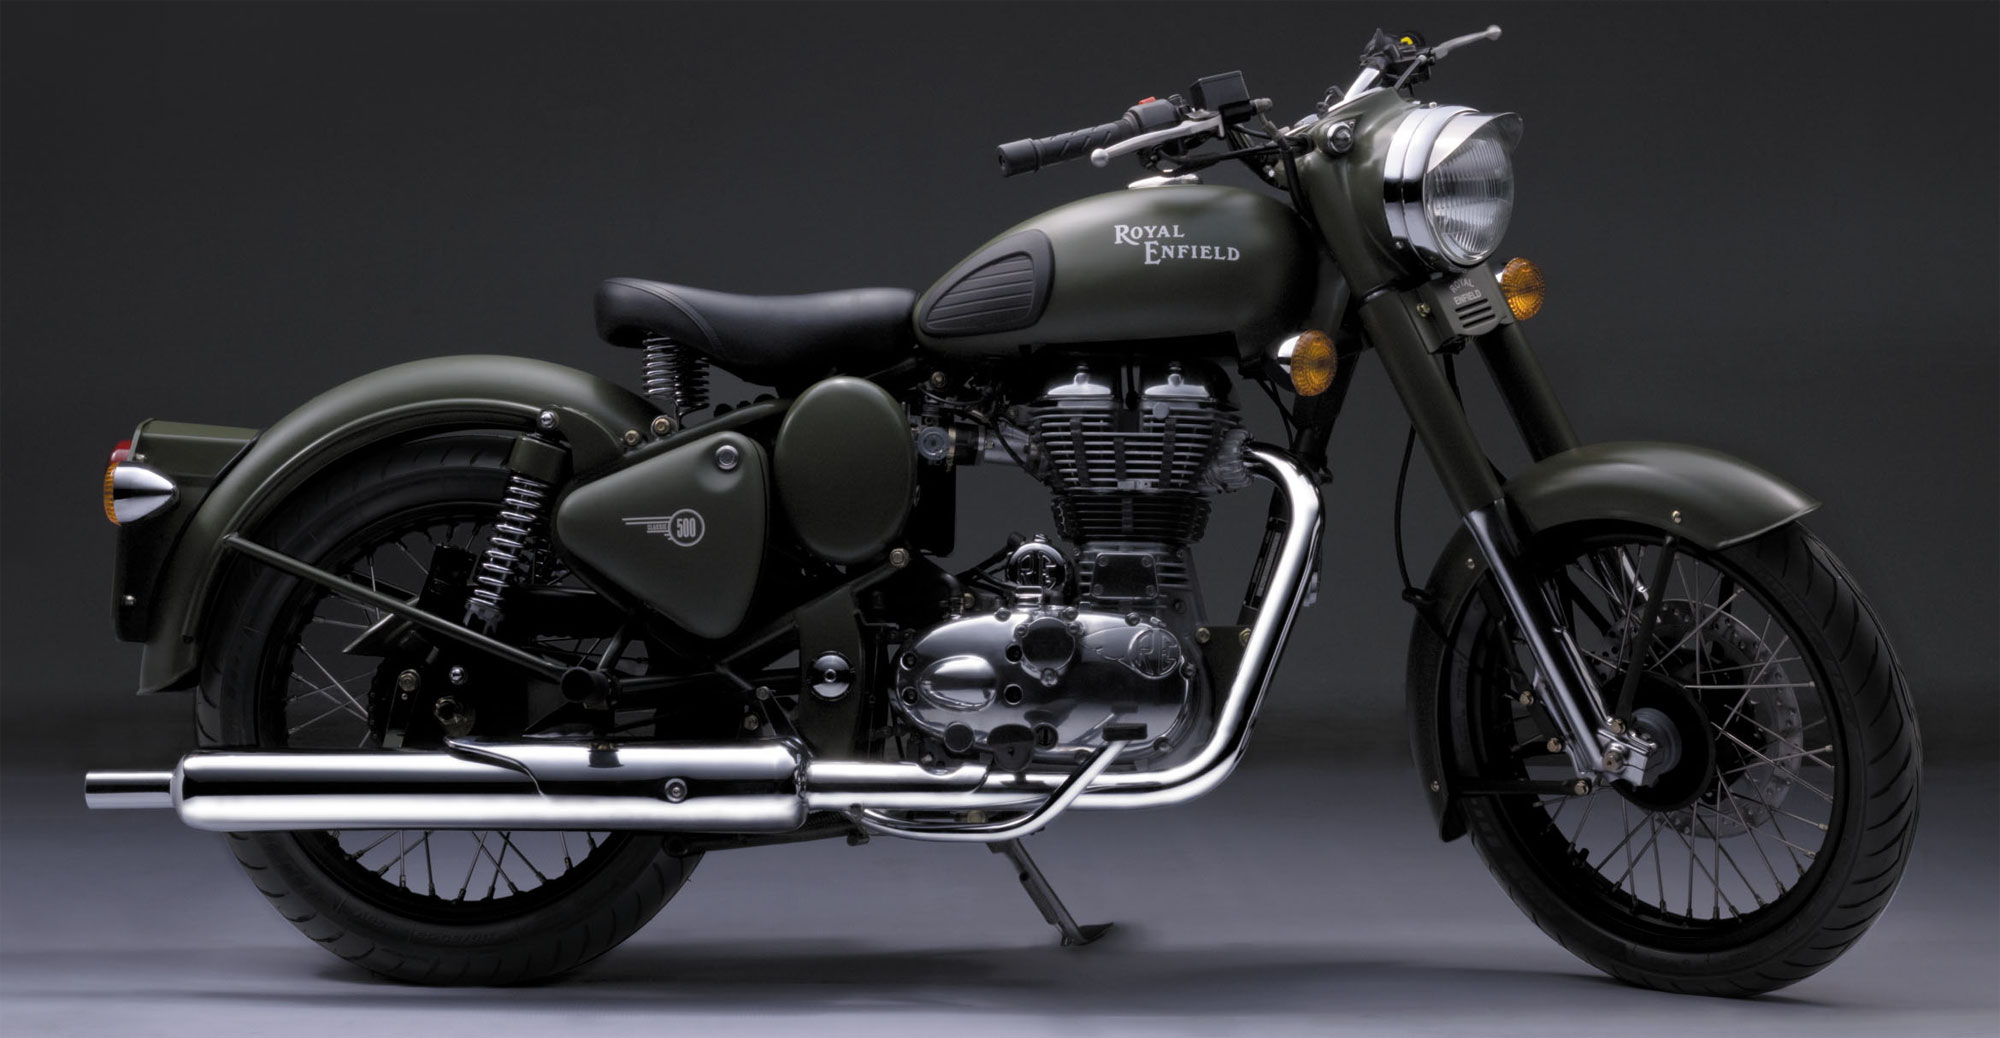 Royal Enfield Bullet 350 Army 2002 images #123587